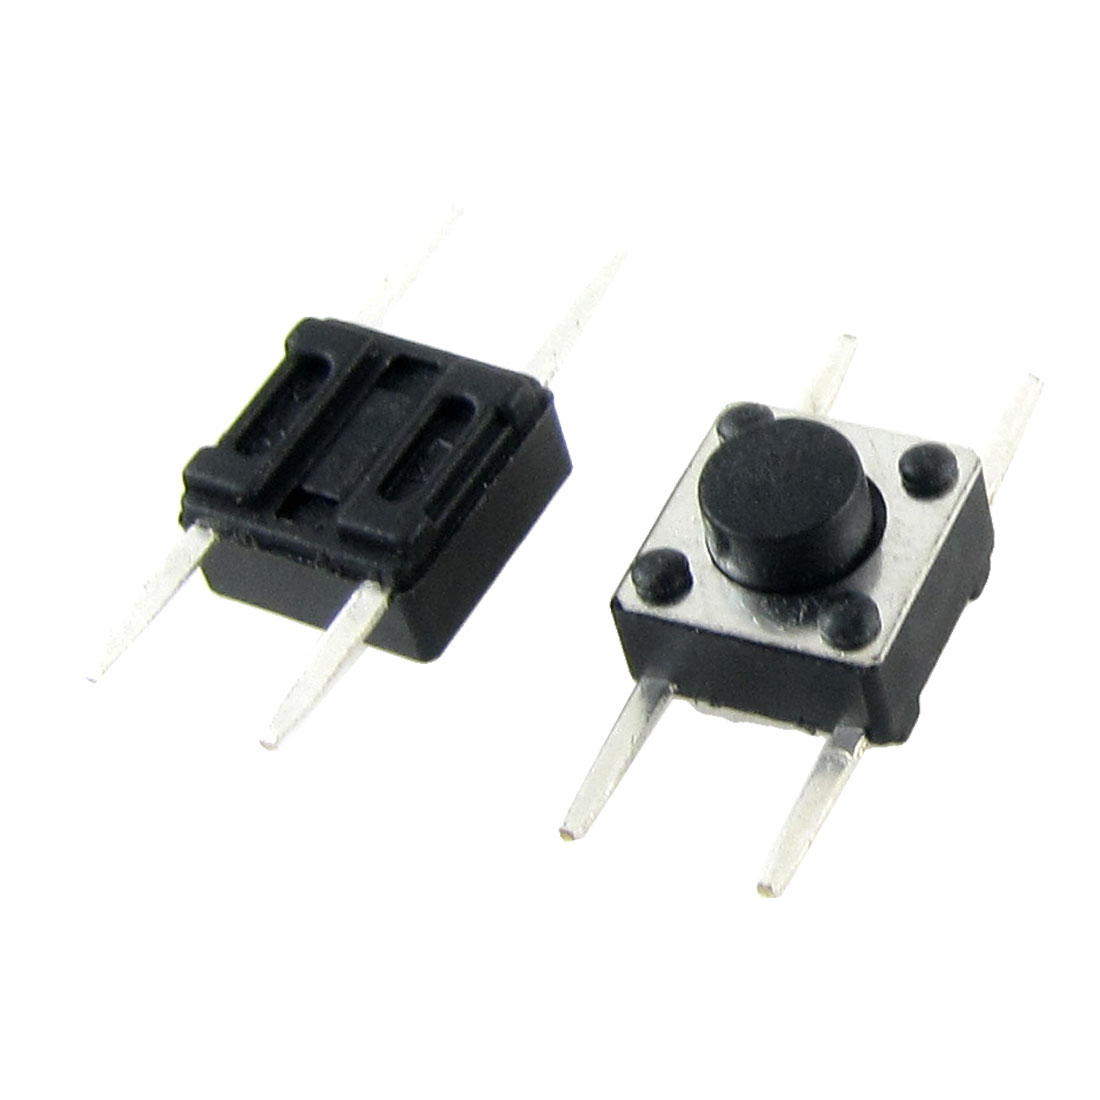 50 Pcs 6 x 6mm x 4mm Momentary Push Button Tact Tactile Switch Non Lock 2 Pin